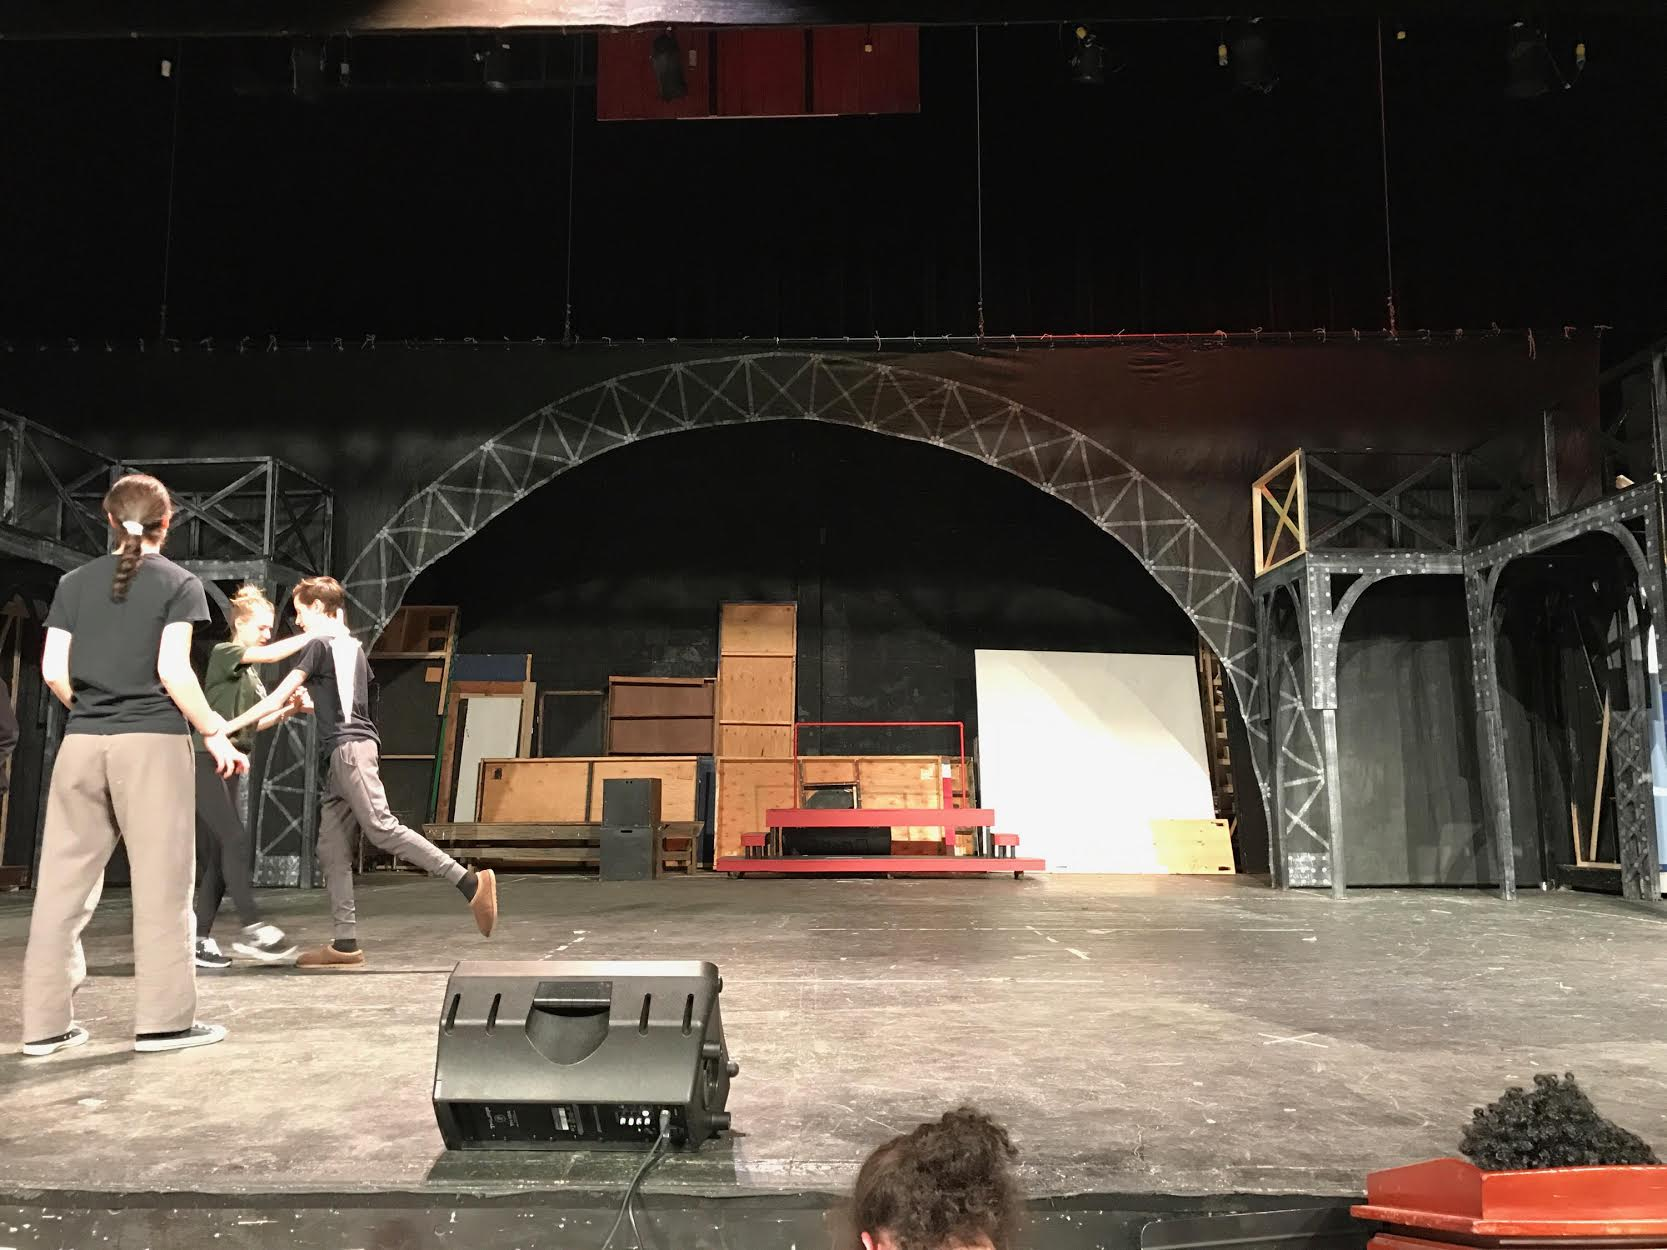 Stage Crew brings the show to life